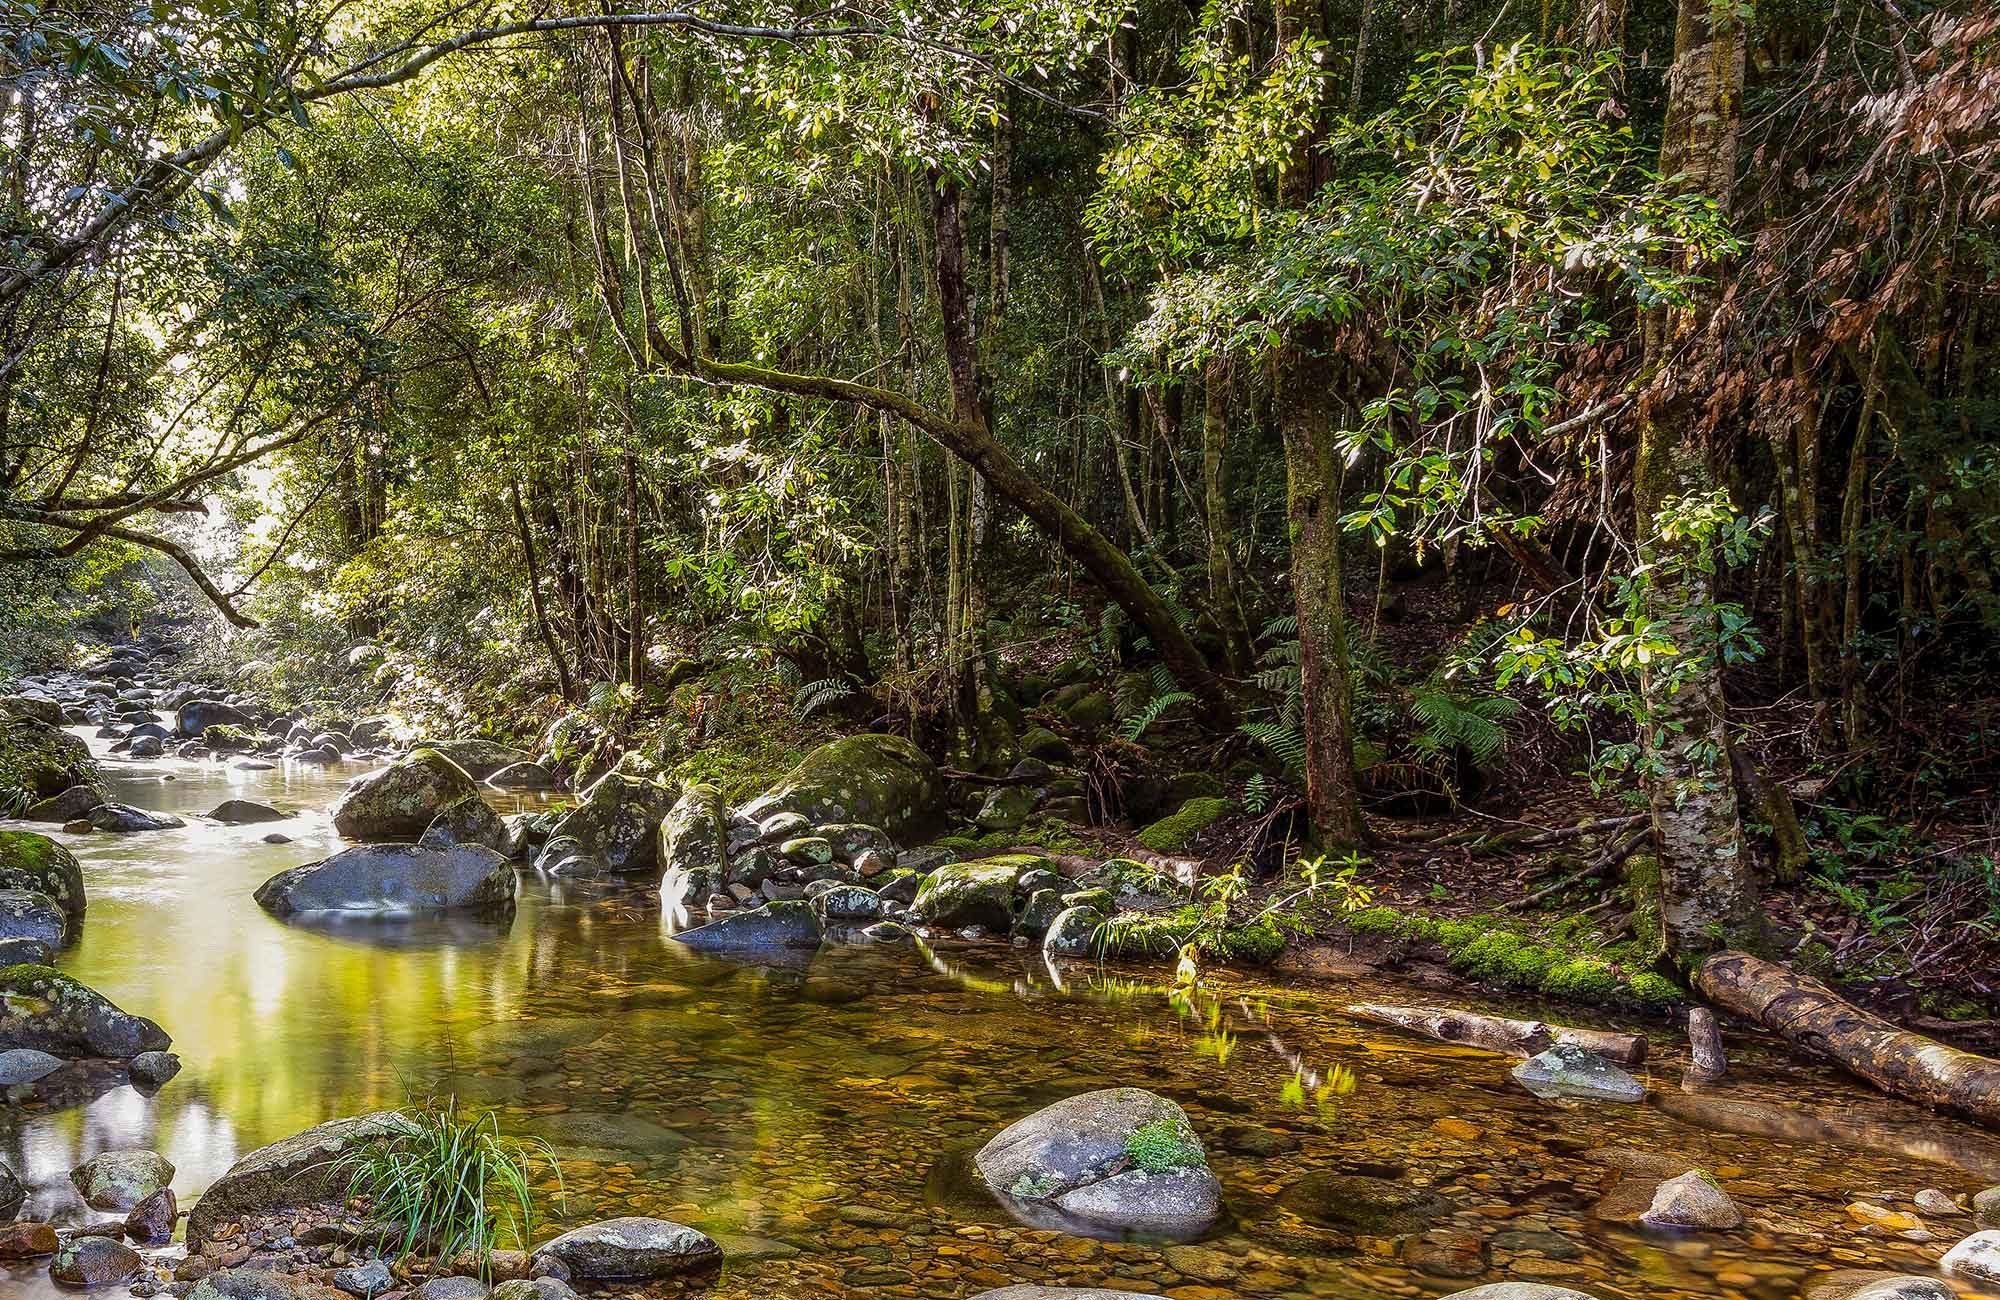 Washpool walk, Washpool National Park. Photo: Rob Cleary